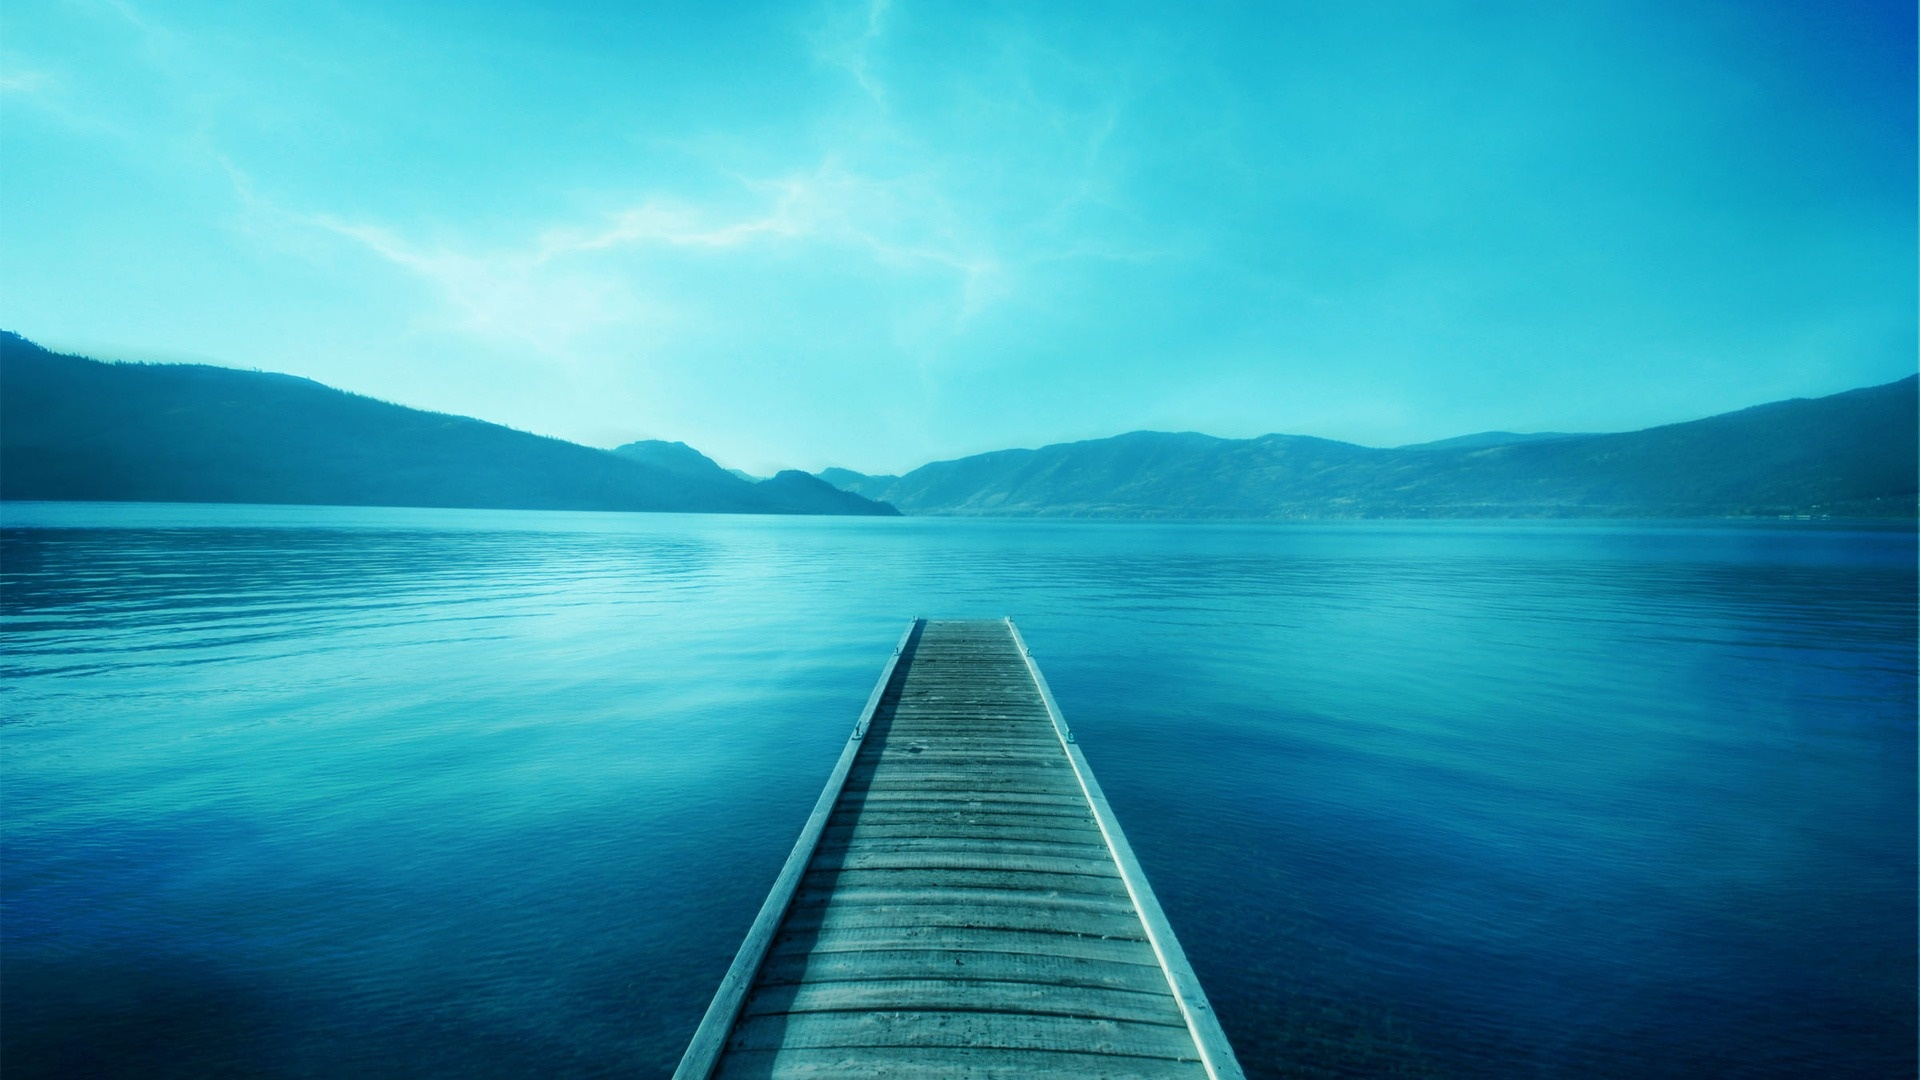 Image: http://www.desktopwallpaperhd.net/wallpapers/13/0/landscape-wallpapers-blue-138896.jpg